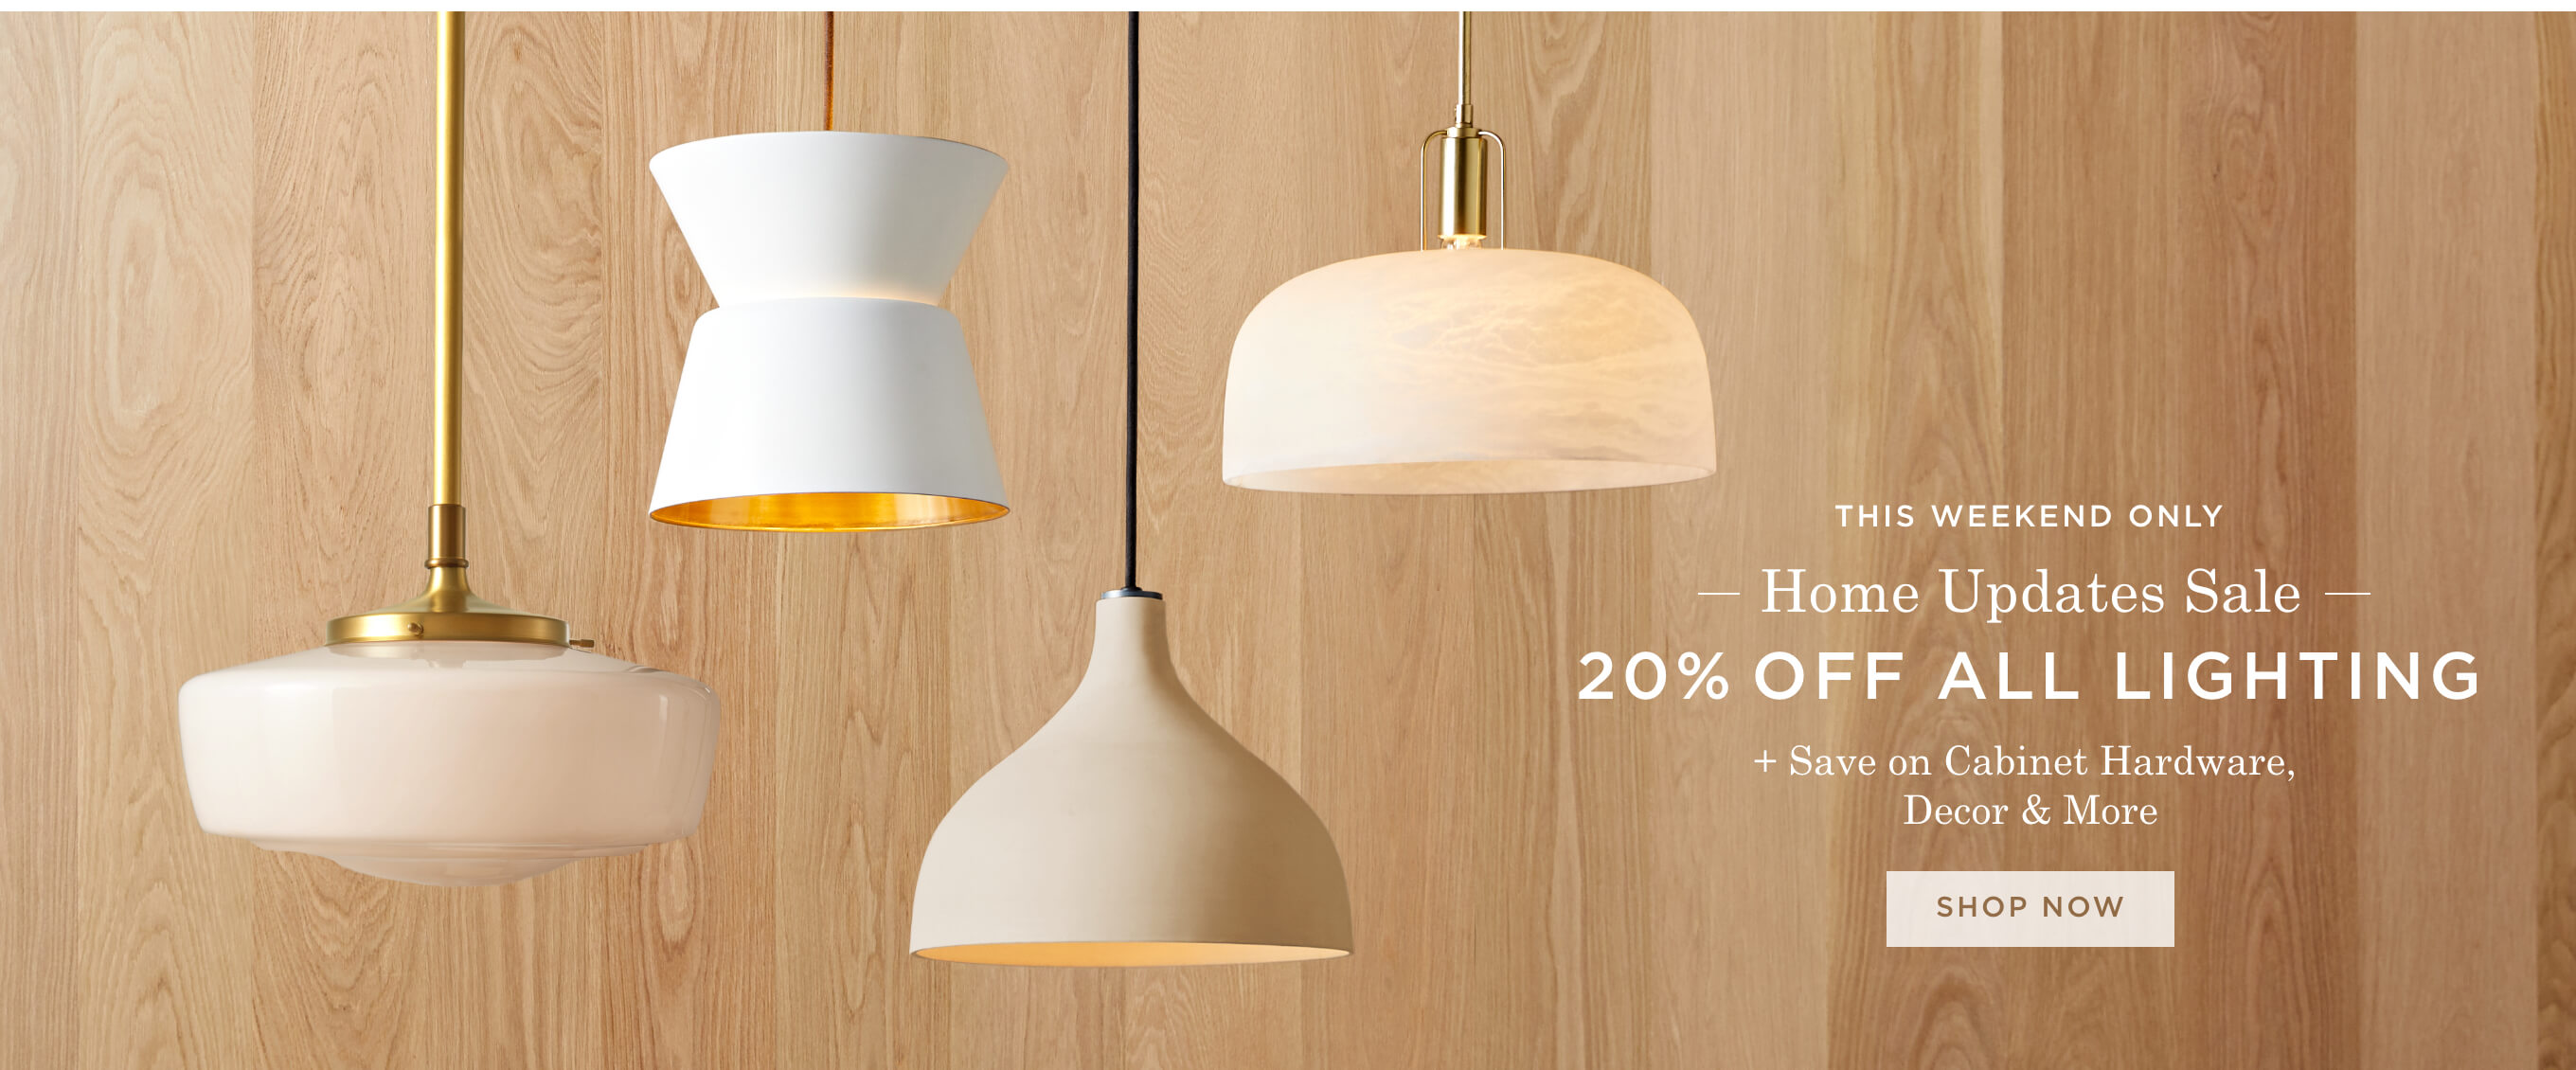 20% Off All Lighting + Save On Cabinet Hardware, Decor & More